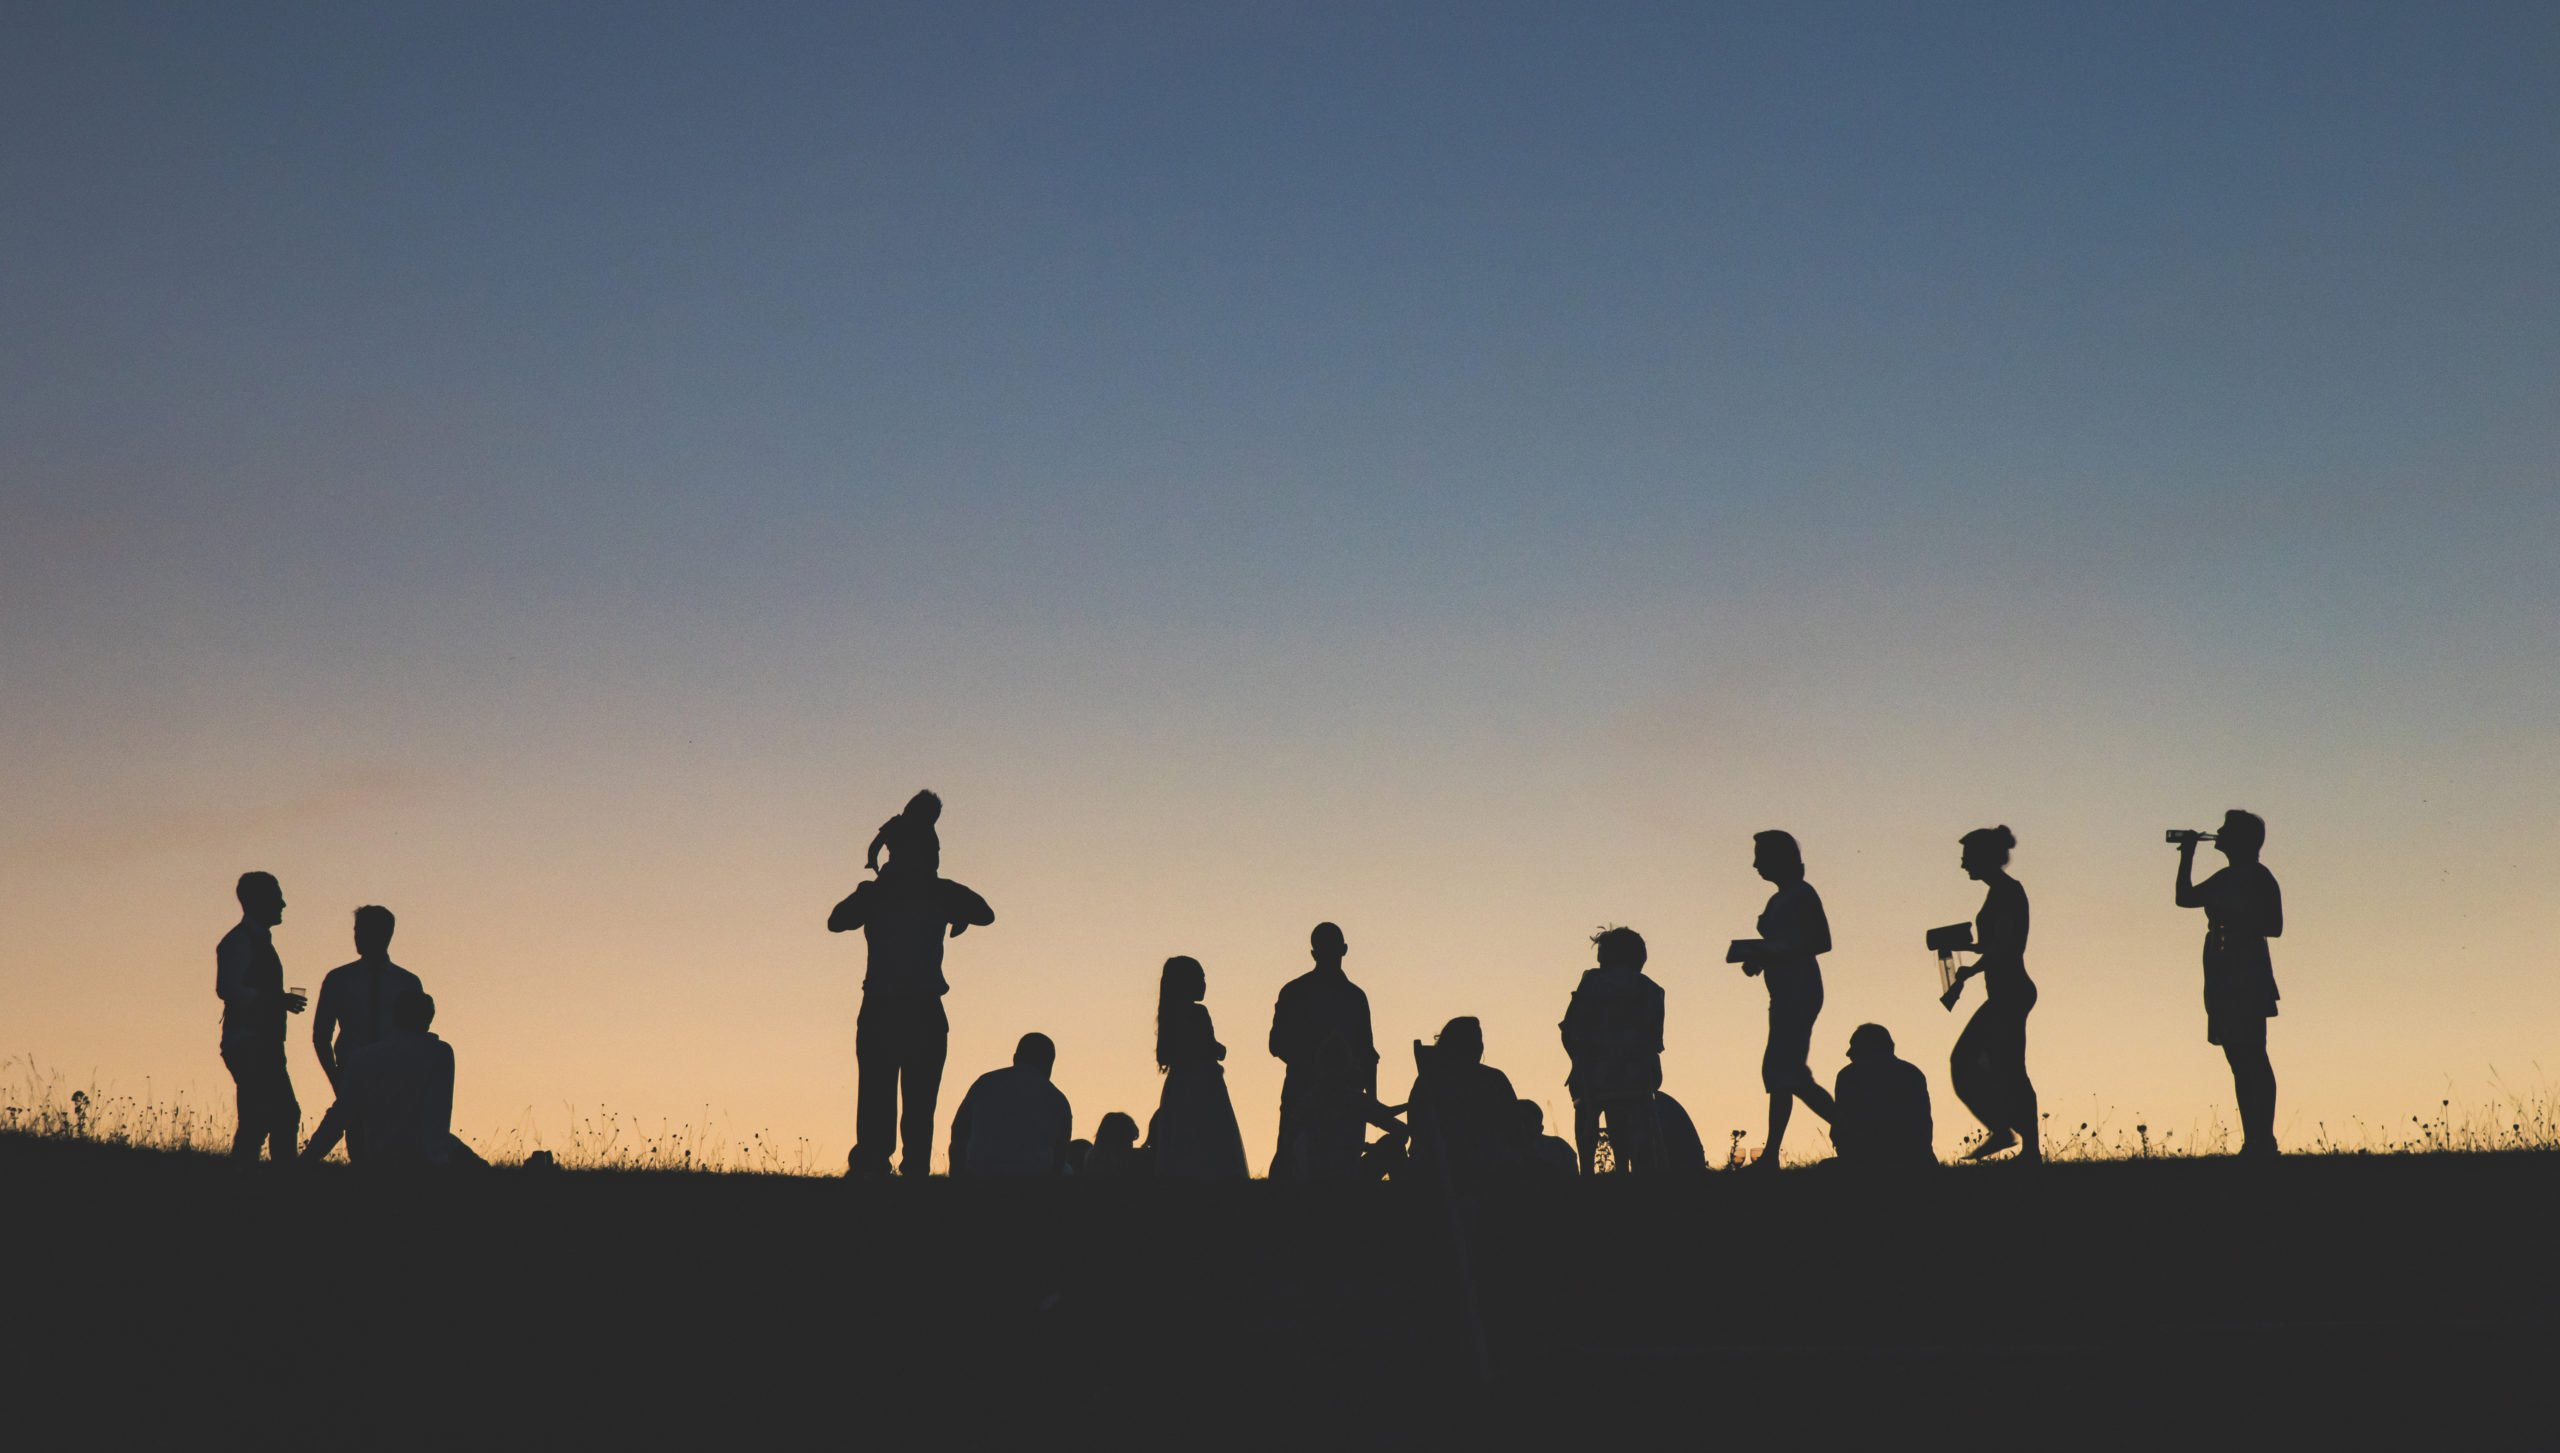 group of people standing on hill silhouette